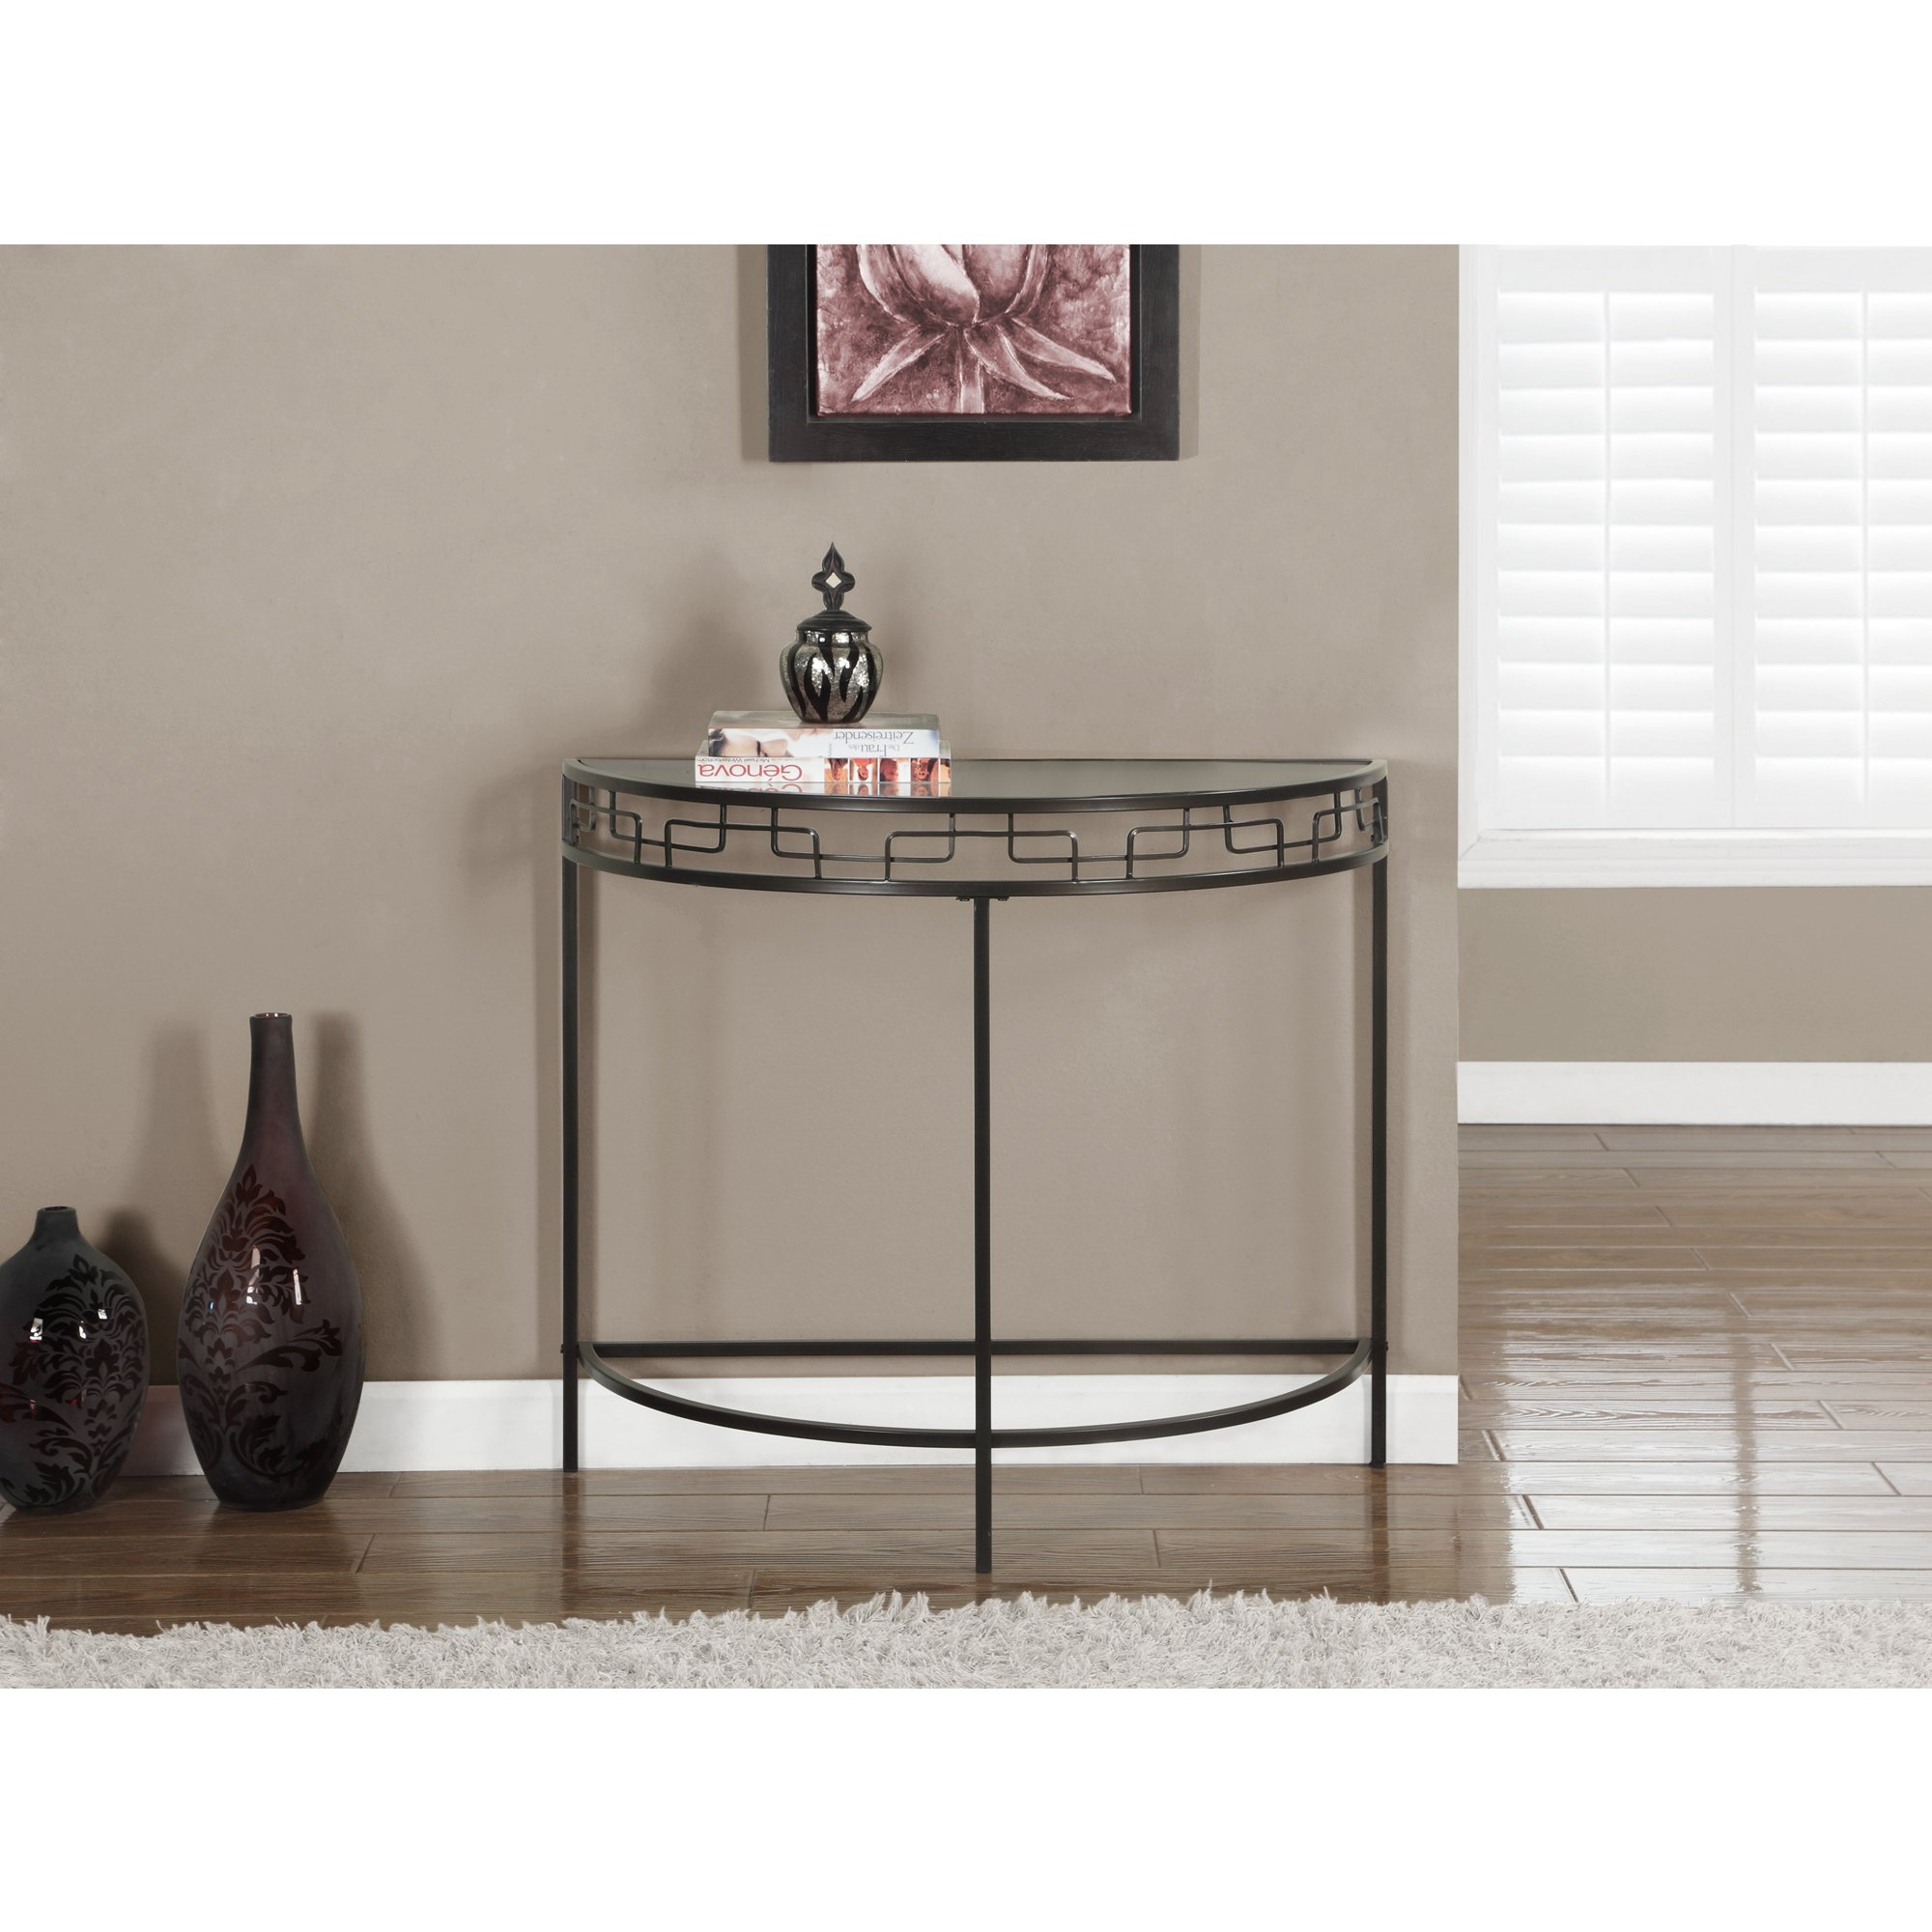 chocolate brown metal hall console accent table free shipping today corner shelf stacking snack tables modern telephone fine linens furniture pieces outdoor bbq grill black white